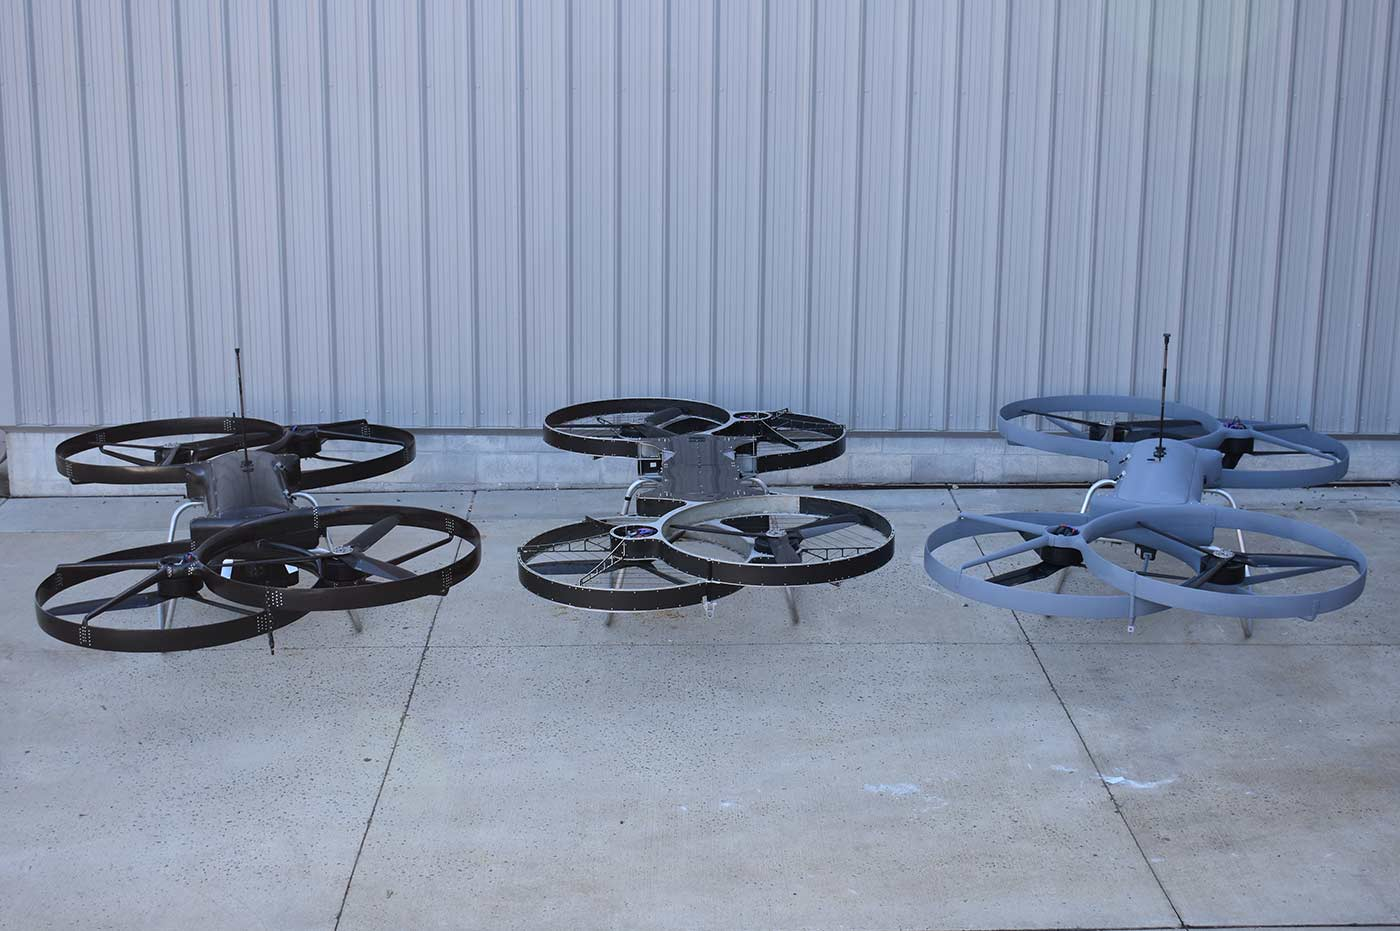 Hoverbikes P2, P3a and P3b